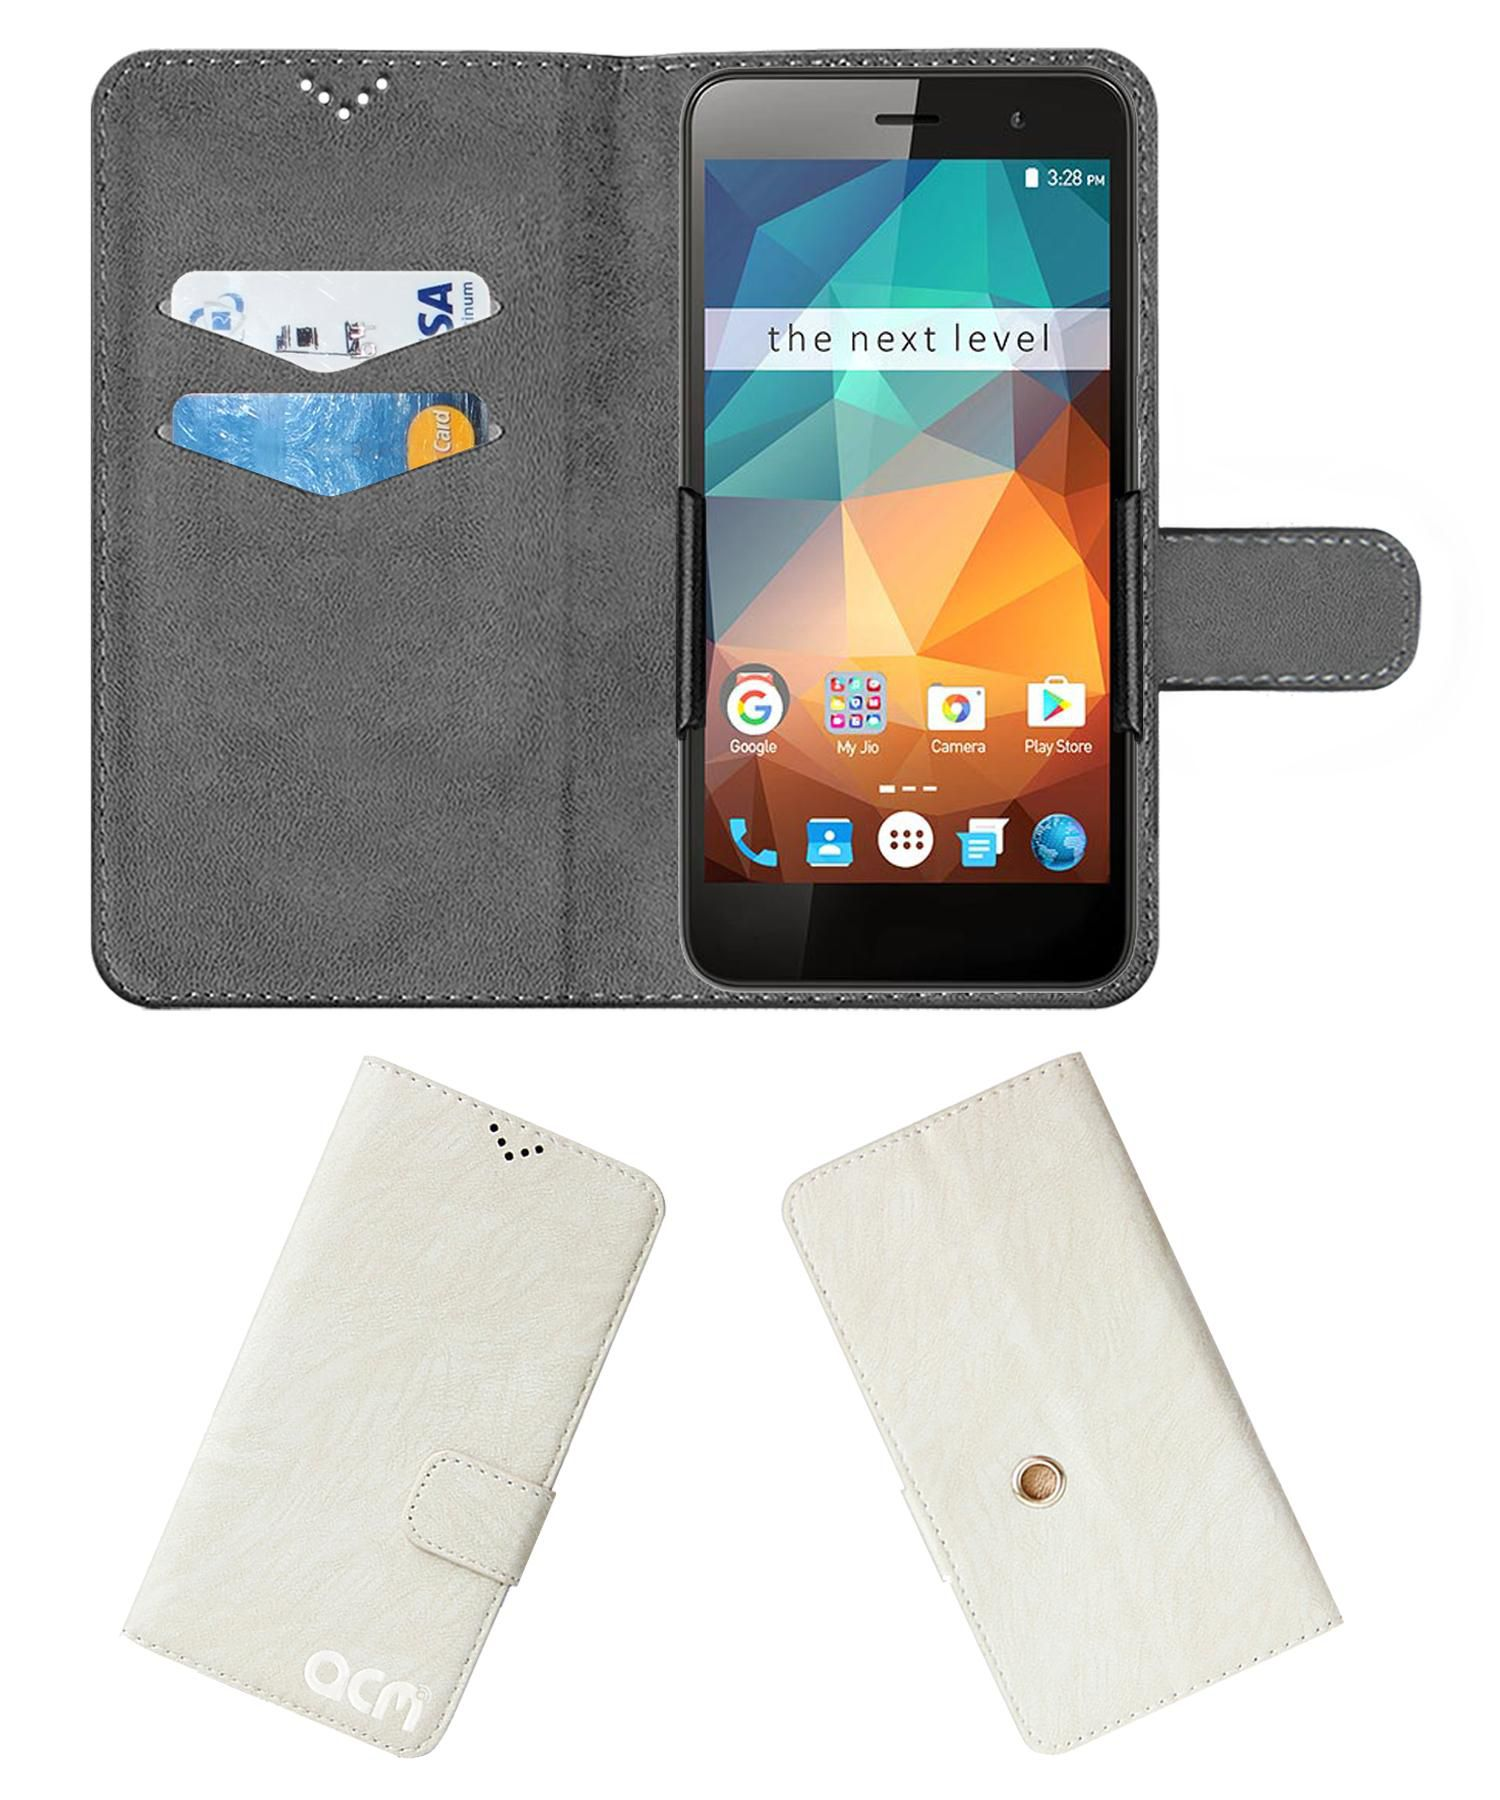 Xolo Era 2X (3 GB RAM) Flip Cover by ACM - White Clip holder to hold your mobile securely